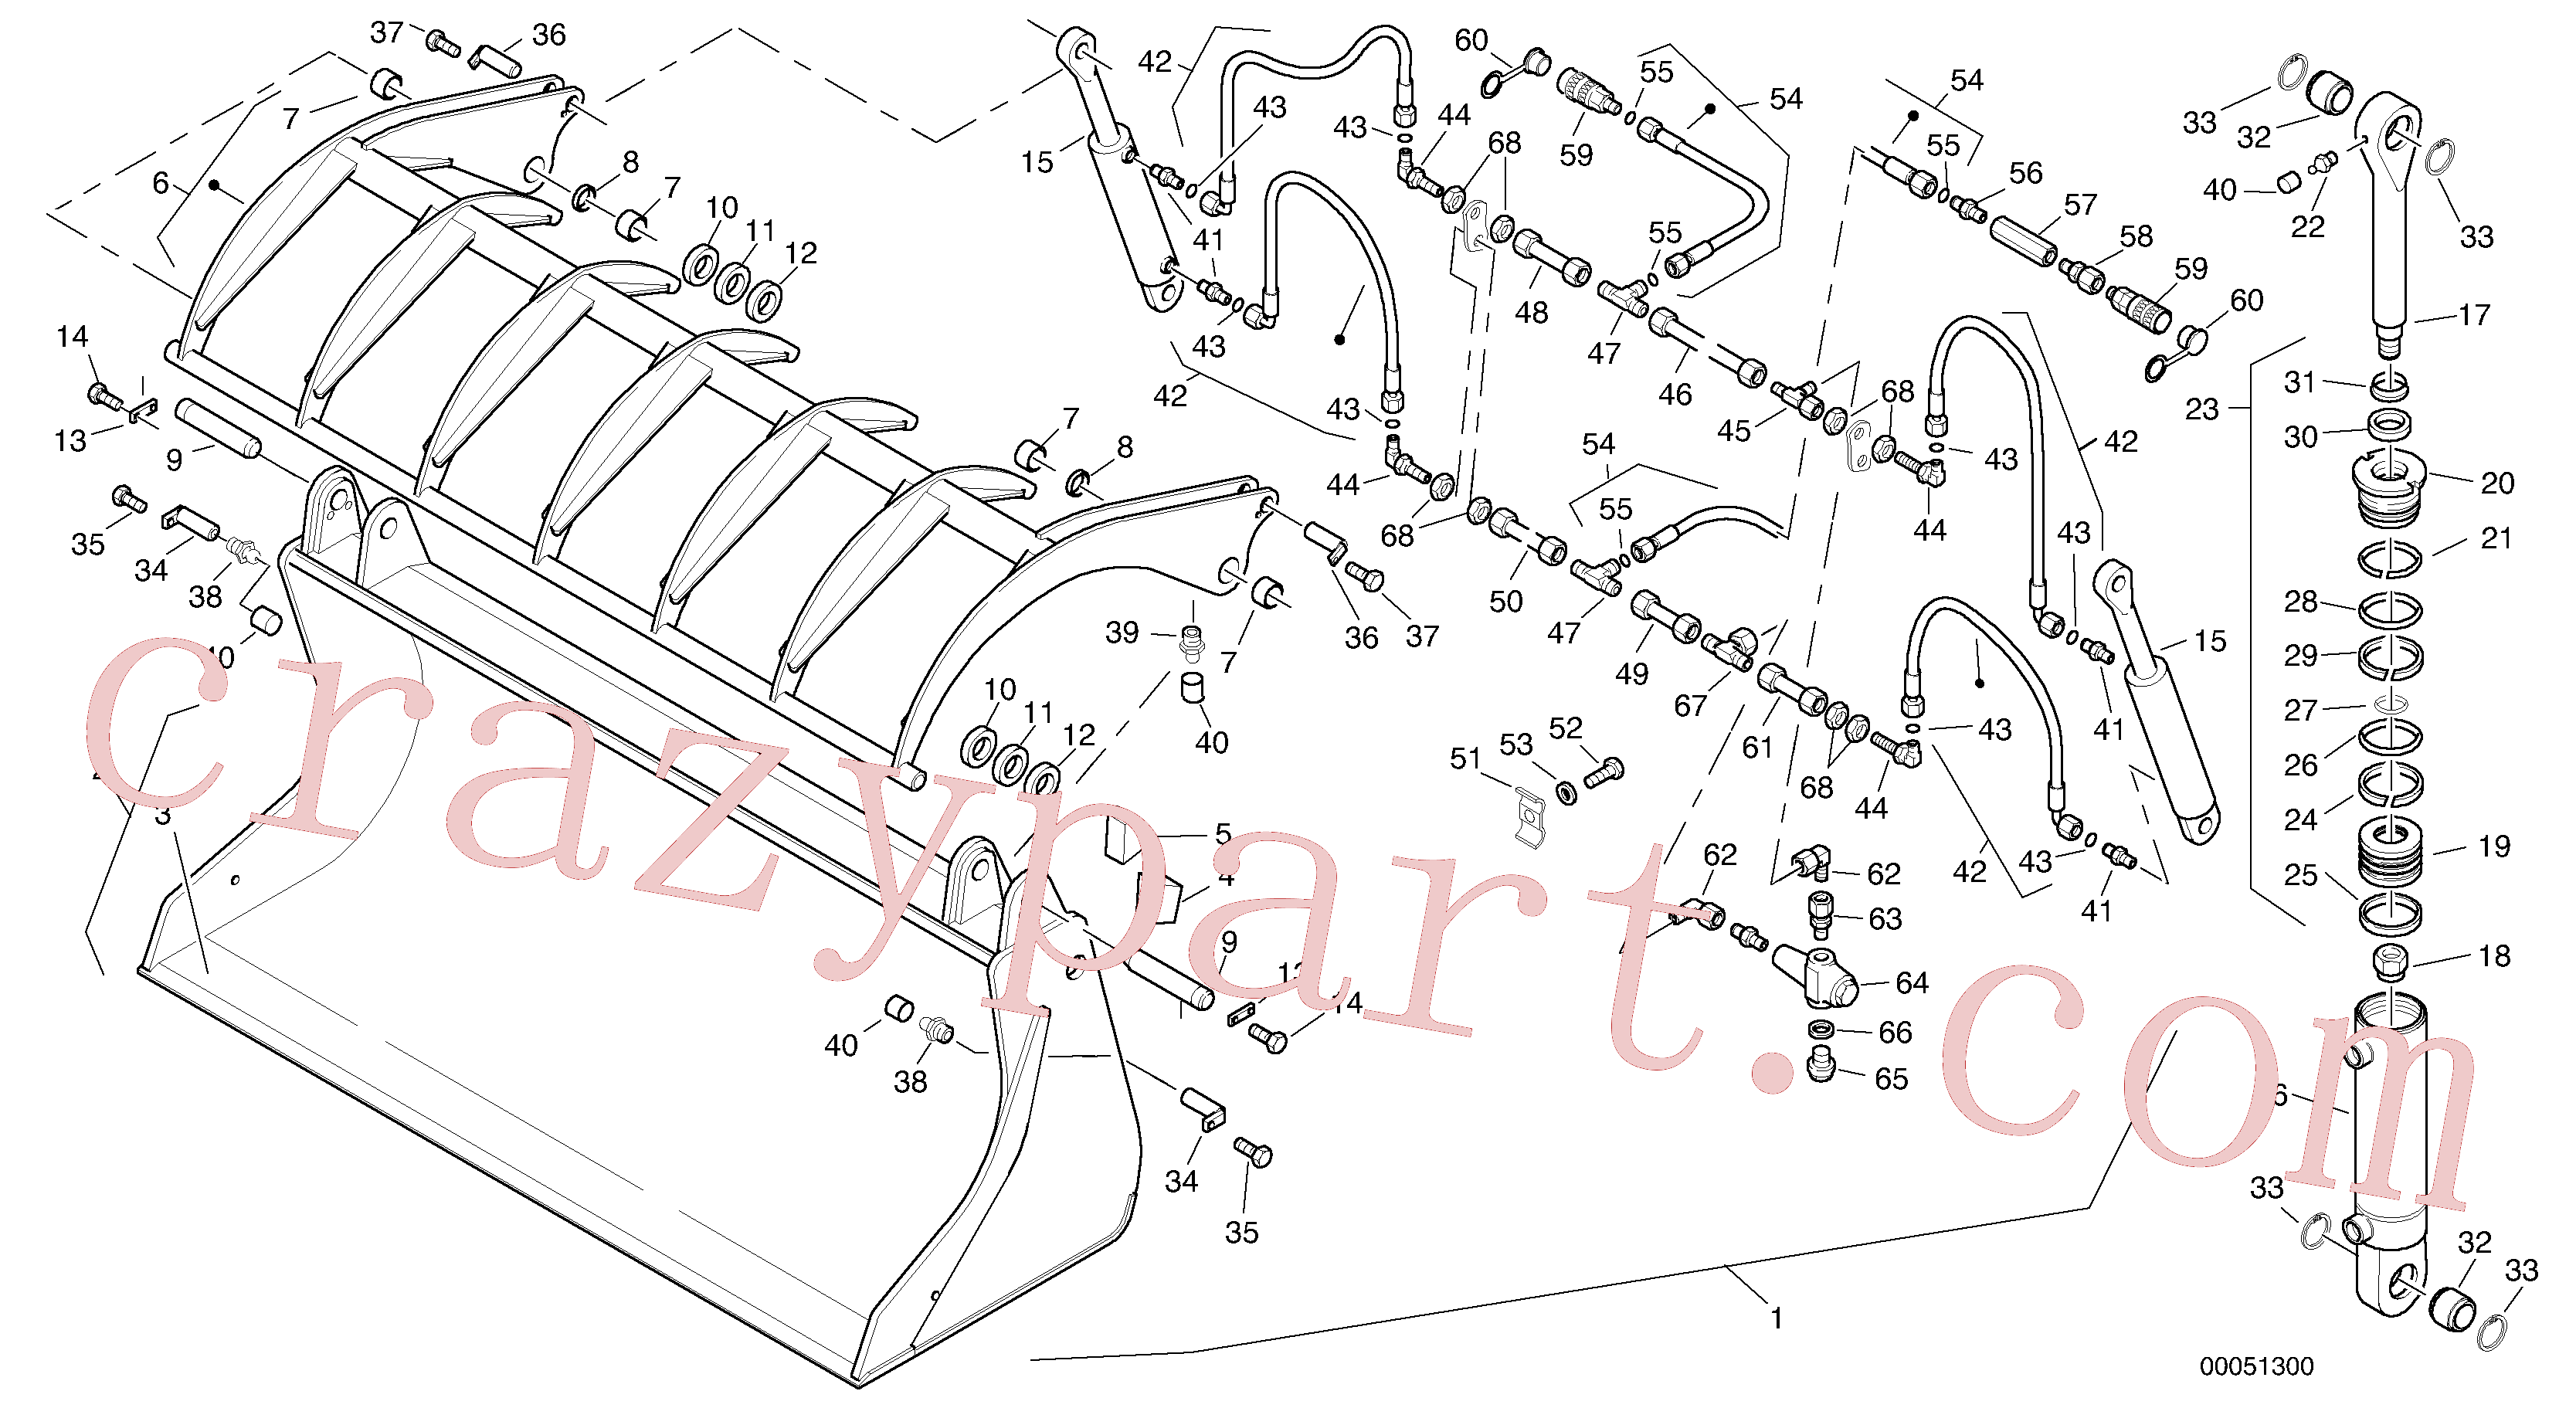 VOE11305512 for Volvo Waste grab bucket - TPZ(00051300 assembly)